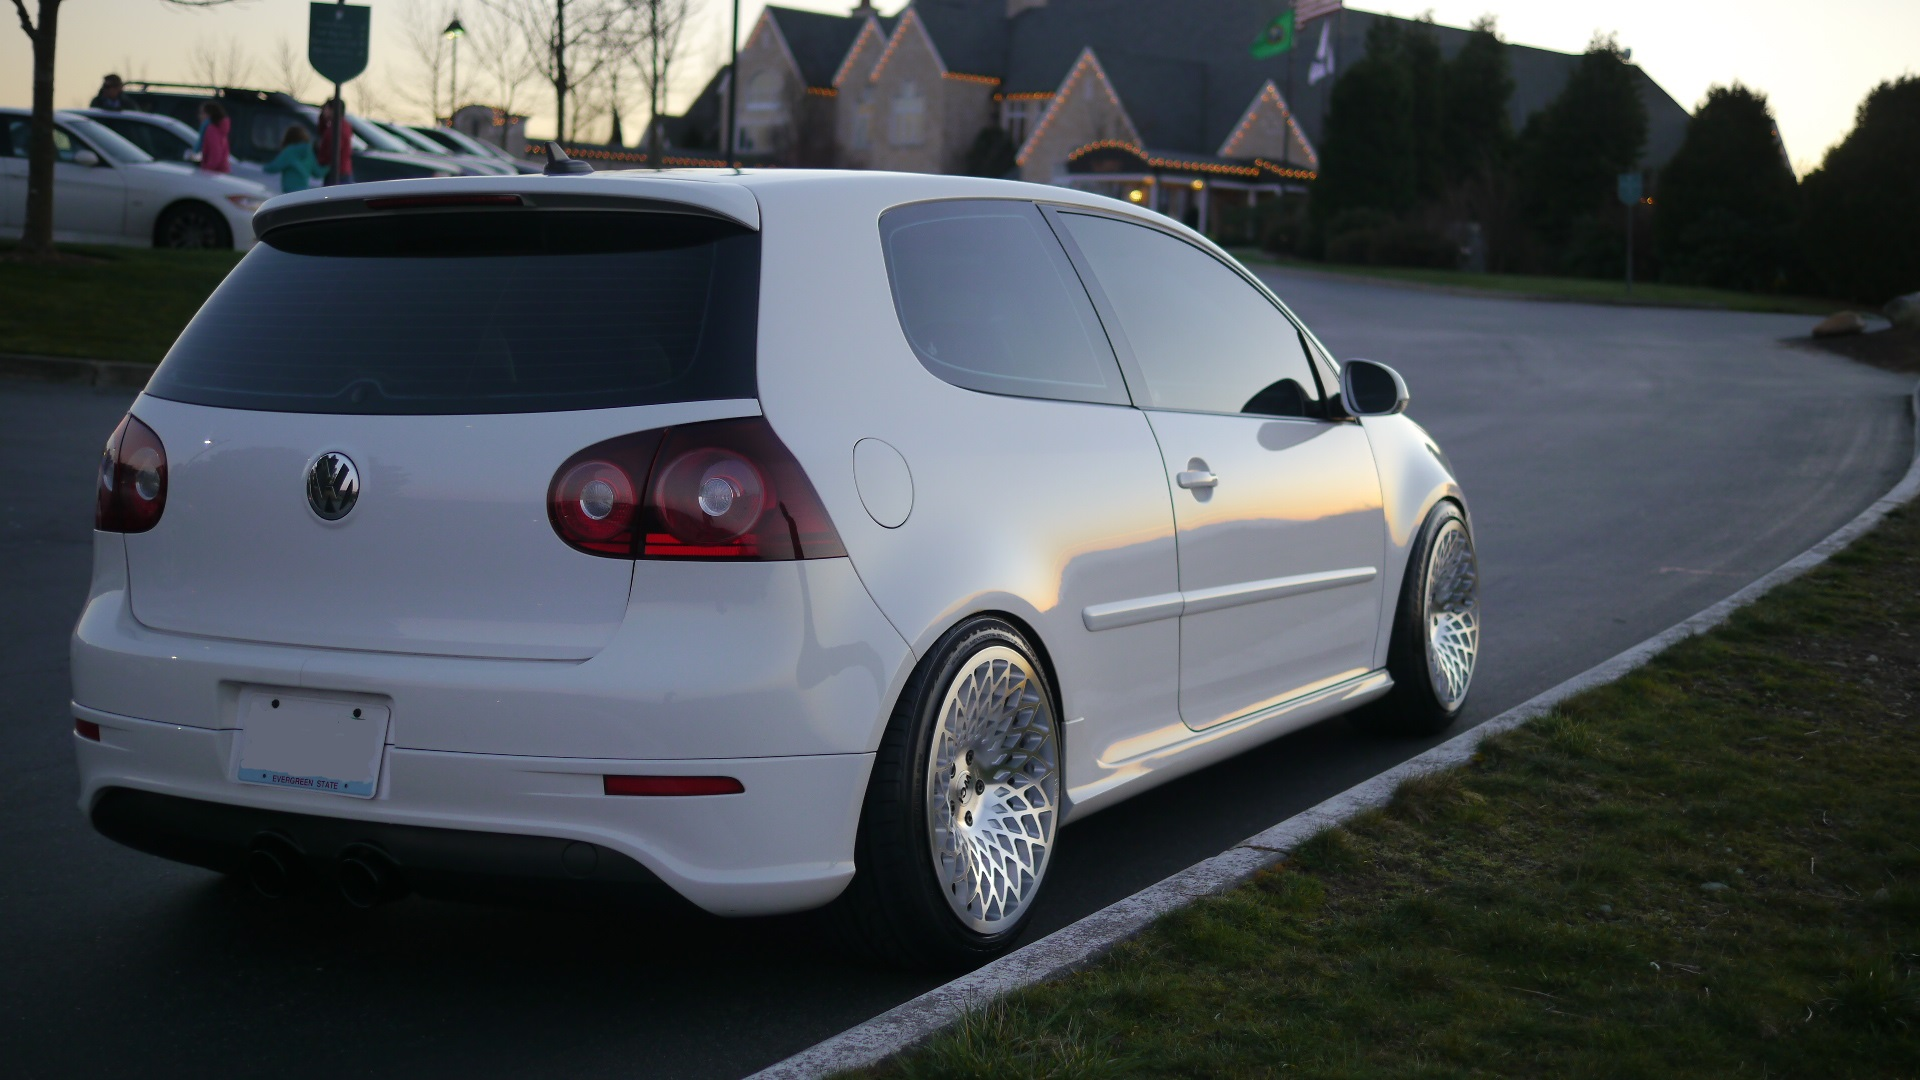 New 18 Quot Wci Mt10 Alloys In Hyper Silver With Polished Face Extreme Concave Rears Et35 35 Bm